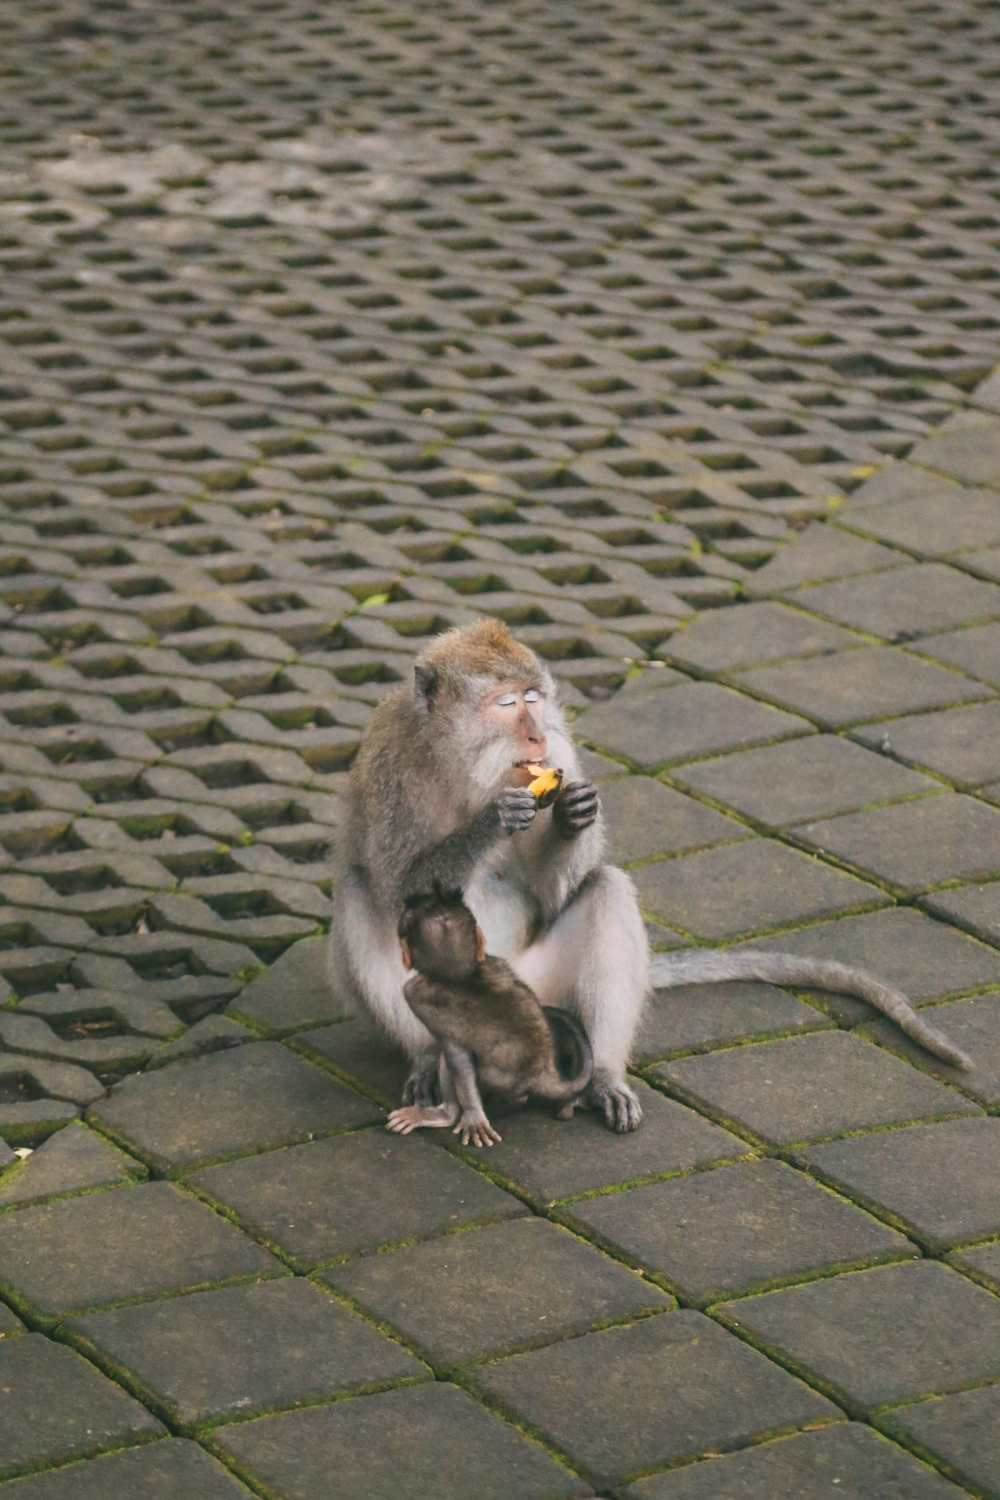 Ubud Monkey Forest In Bali - Things To Know Before You Visit (7)